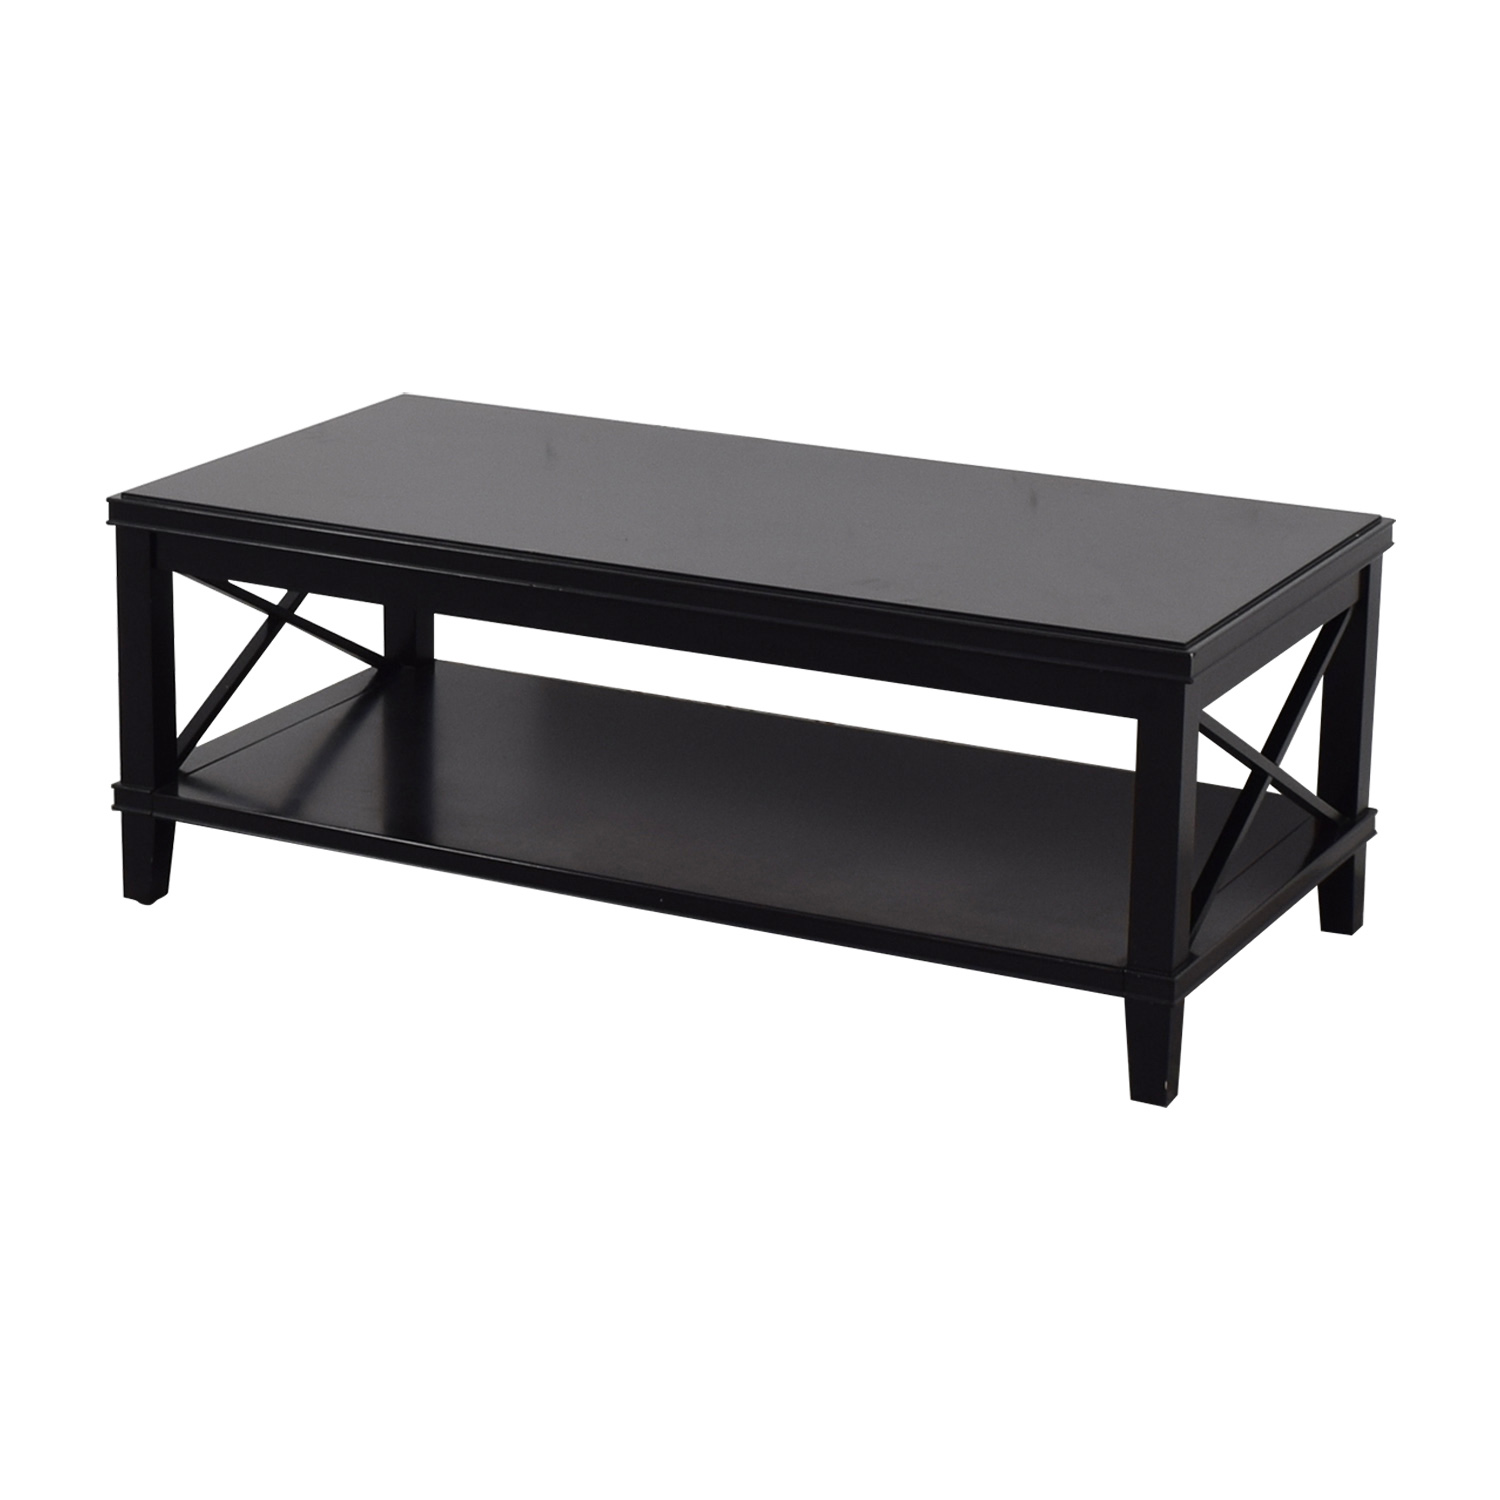 OFF Pottery Barn Pottery Barn Cassie Wood Coffee Table Tables - Pottery barn cassie coffee table